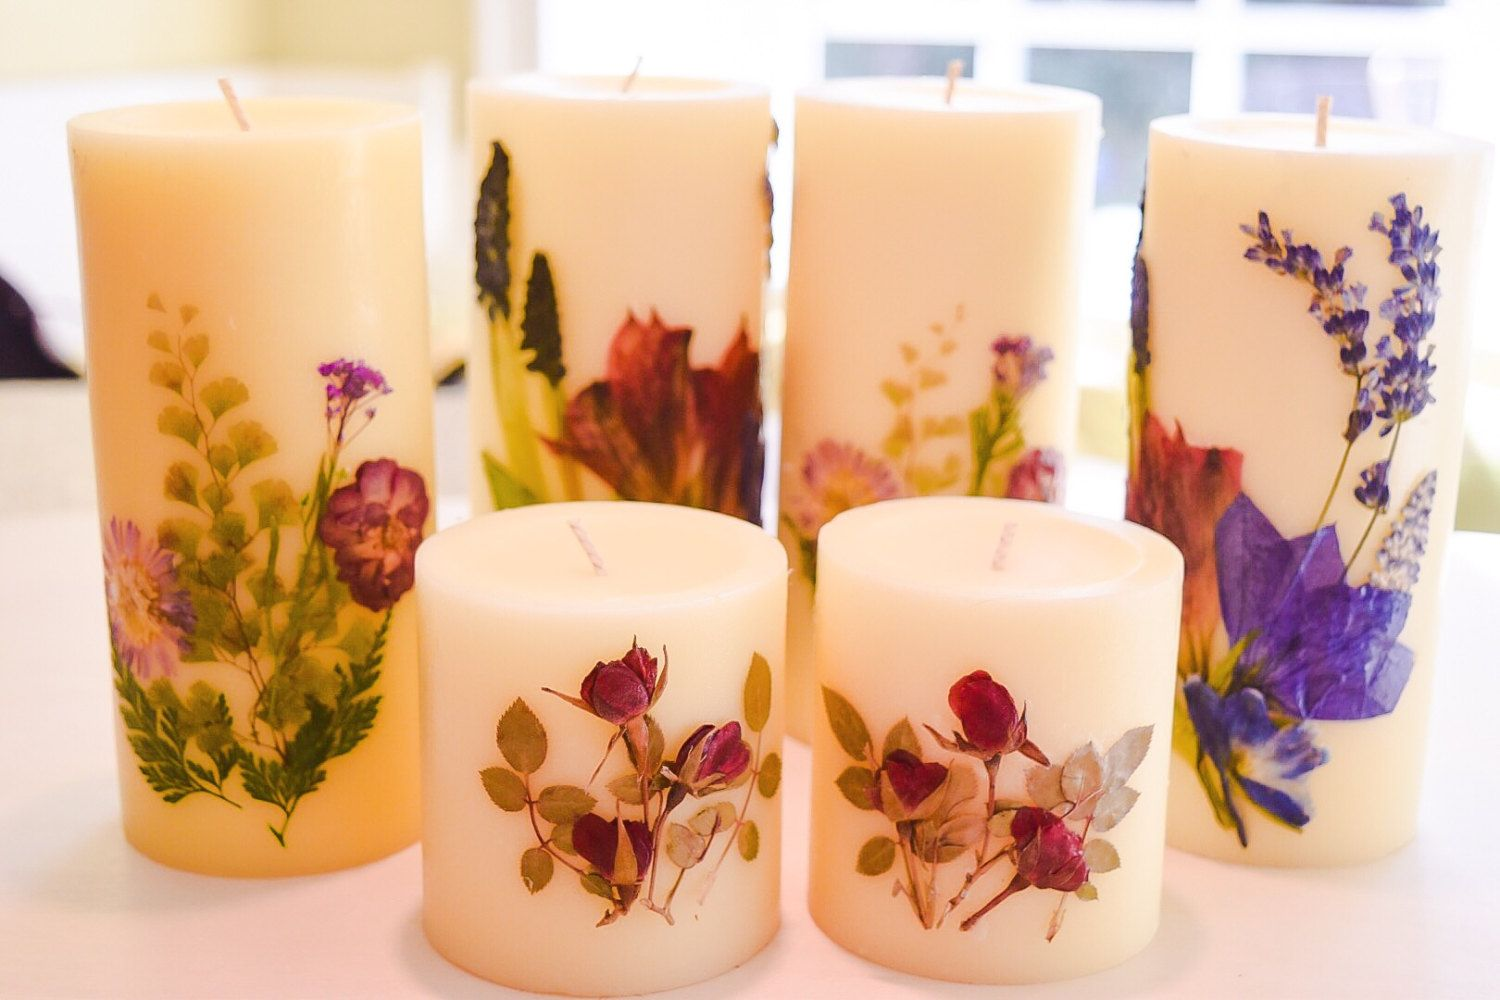 Memorial candles with your special bouquet funeral flower candles memorial candles with your special bouquet funeral flower candleswedding flower candles save your own flower bouquet candles 20 off izmirmasajfo